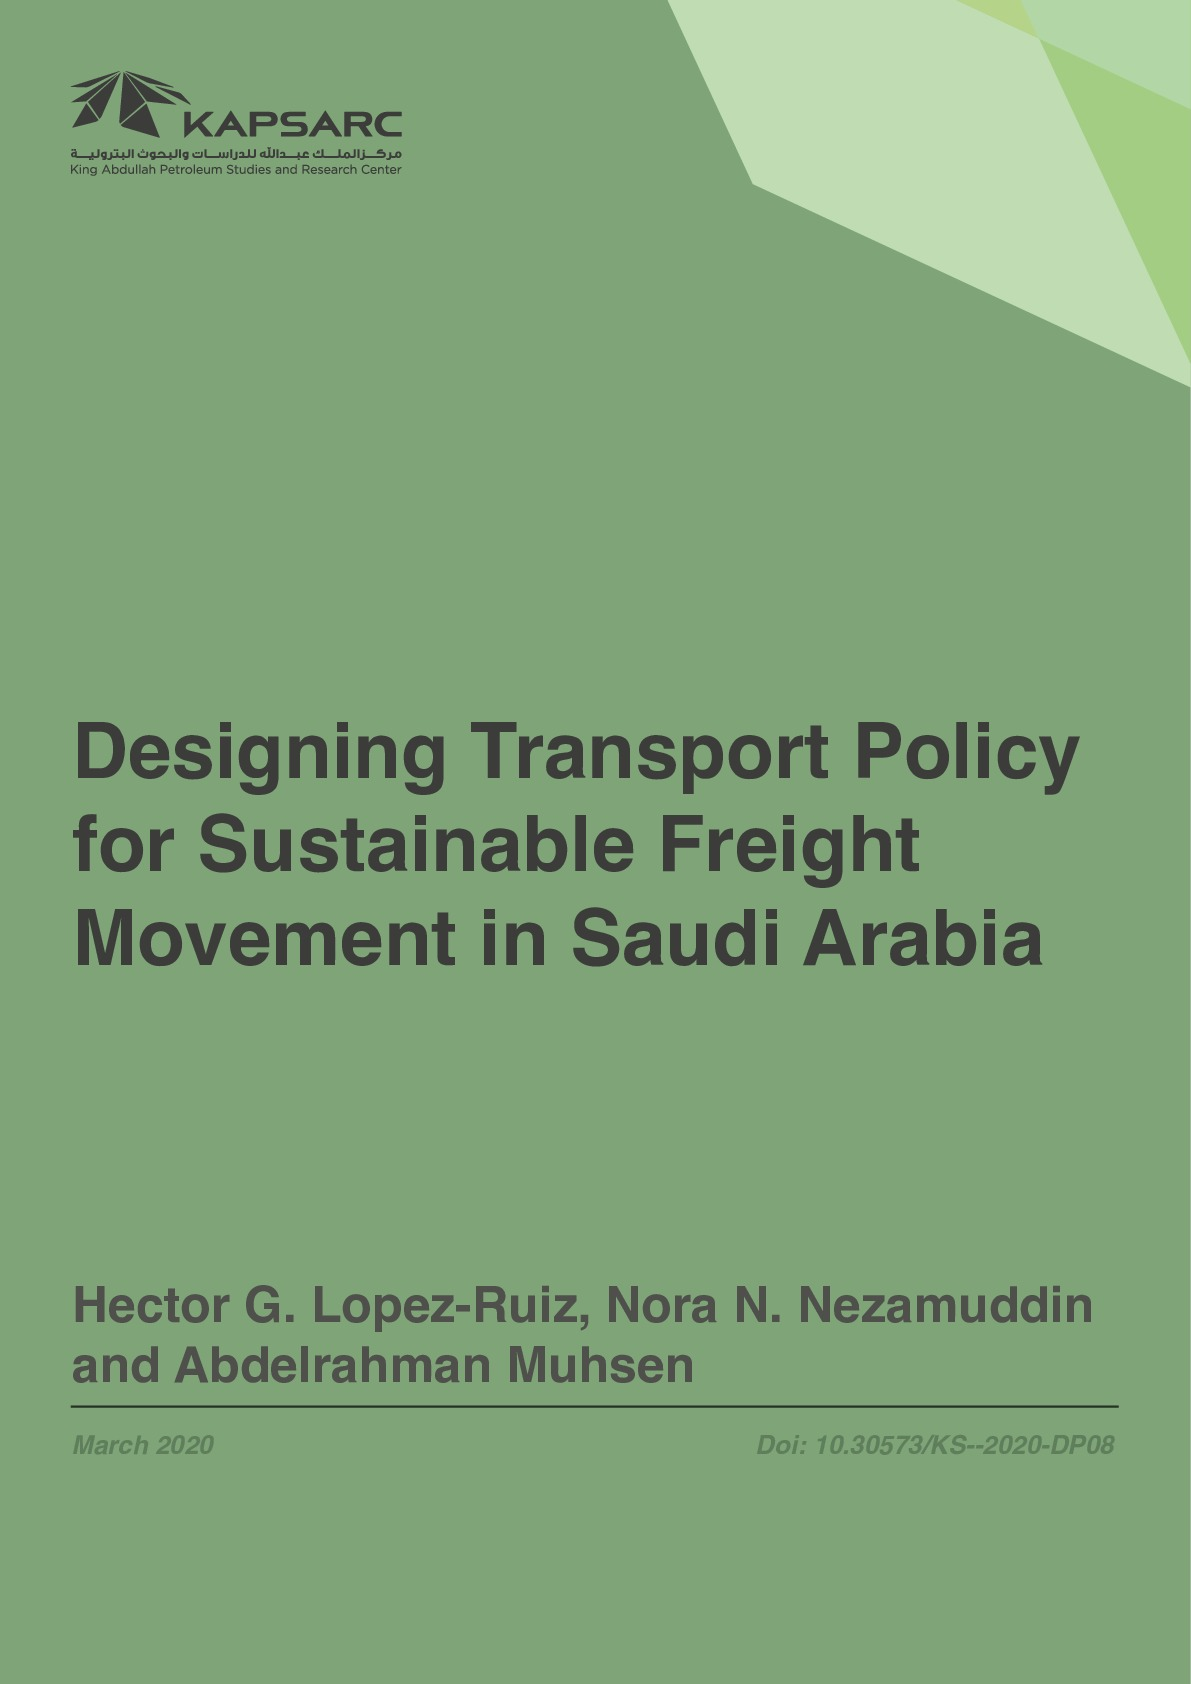 Designing Transport Policy for Sustainable Freight Movement in Saudi Arabia